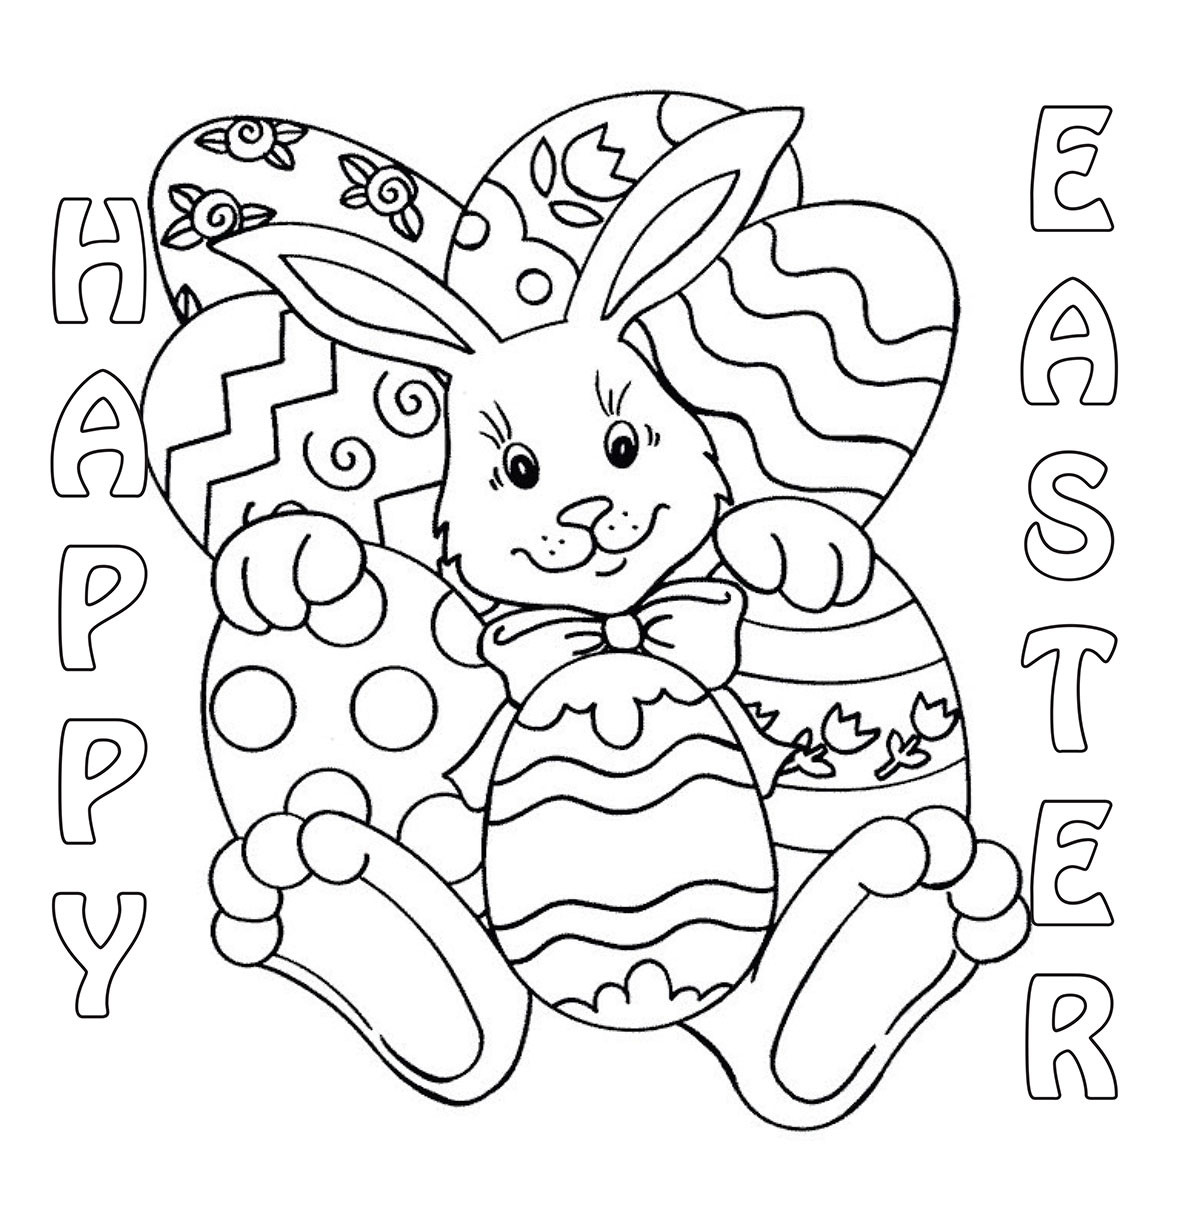 Easter Bunny Coloring Pages For Toddlers  March 2014